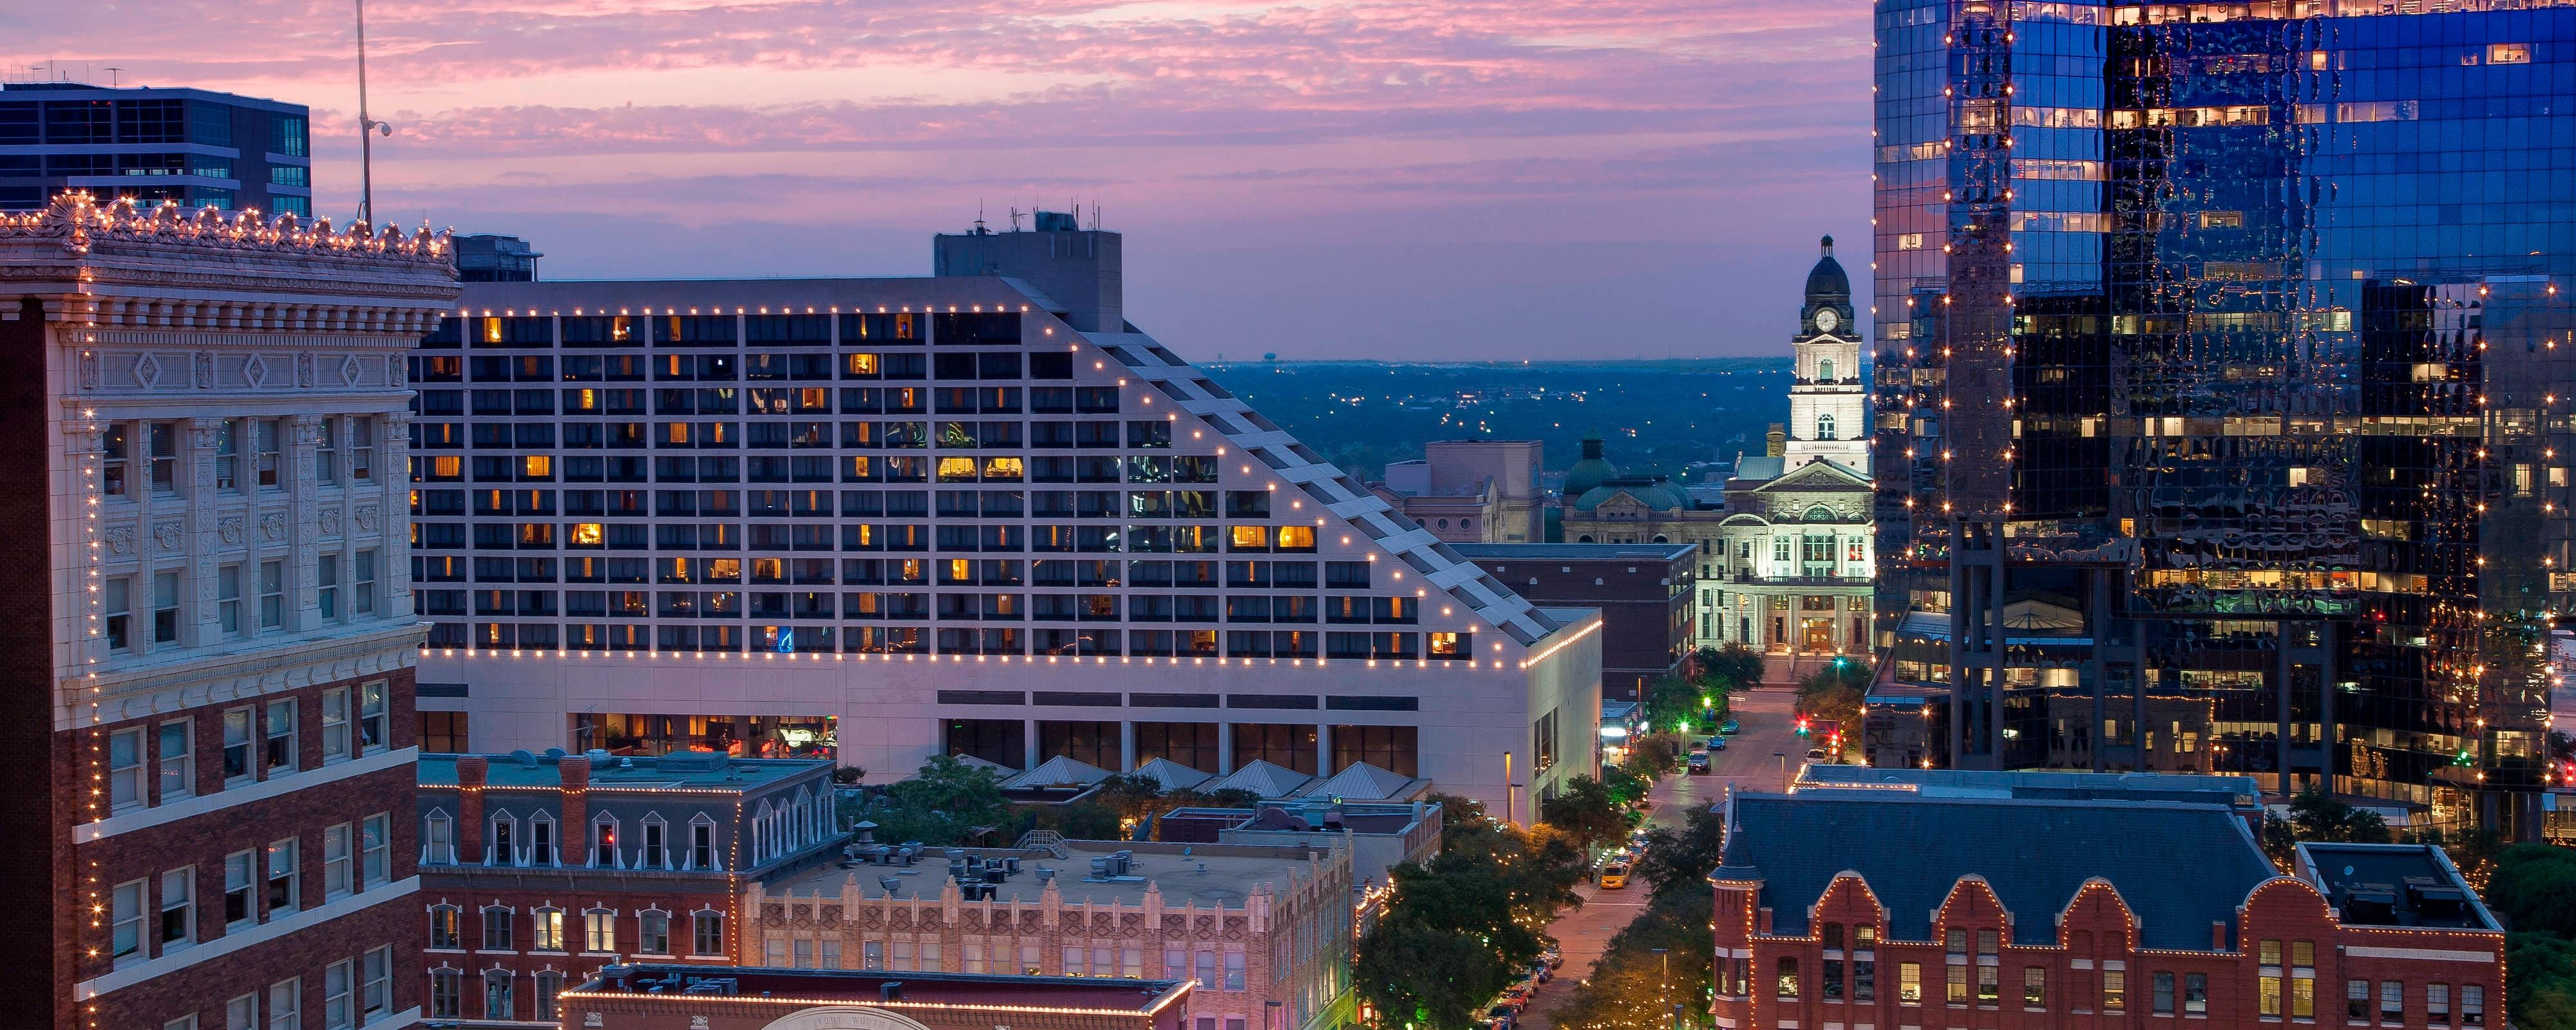 Schrankbett London Hotels In Der Innenstadt Von Fort Worth Hotel In Fort Worth